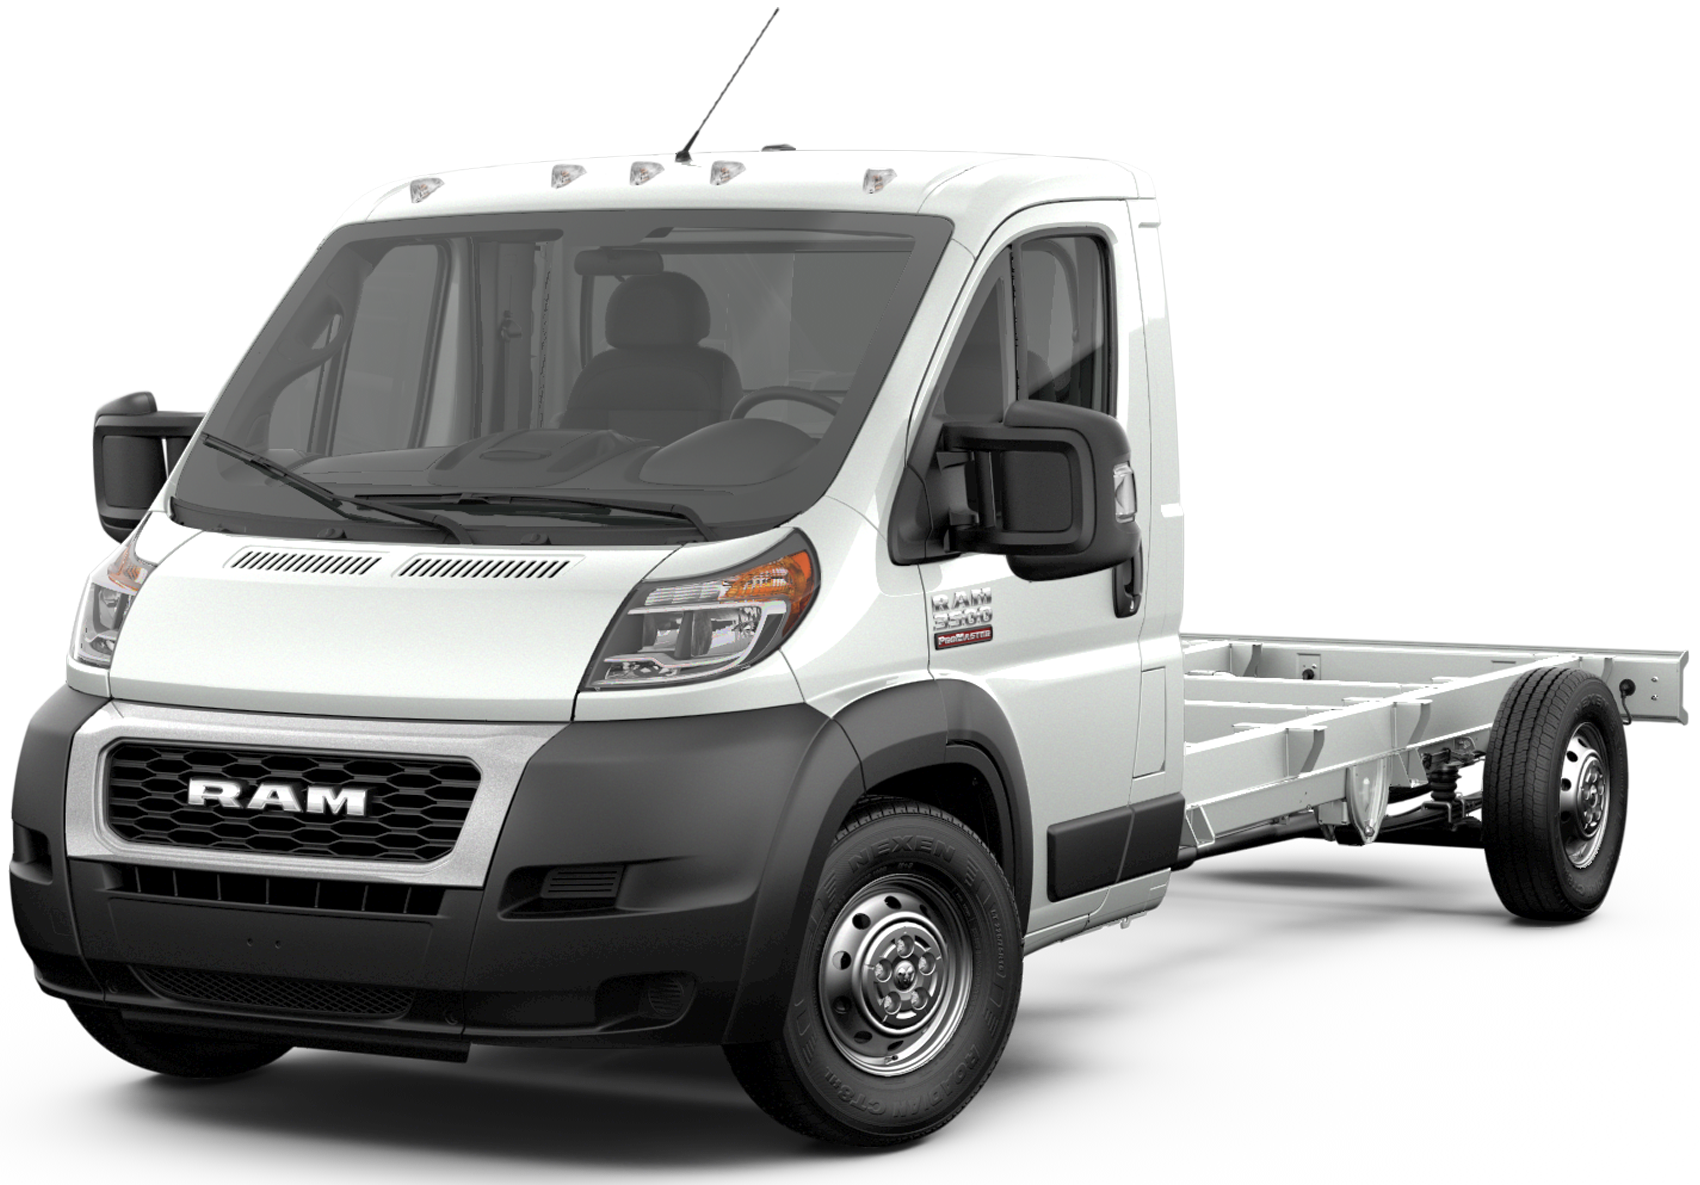 Ig Burton Milford De >> 2019 Ram ProMaster 3500 Cab Chassis Incentives, Specials & Offers in Milford DE